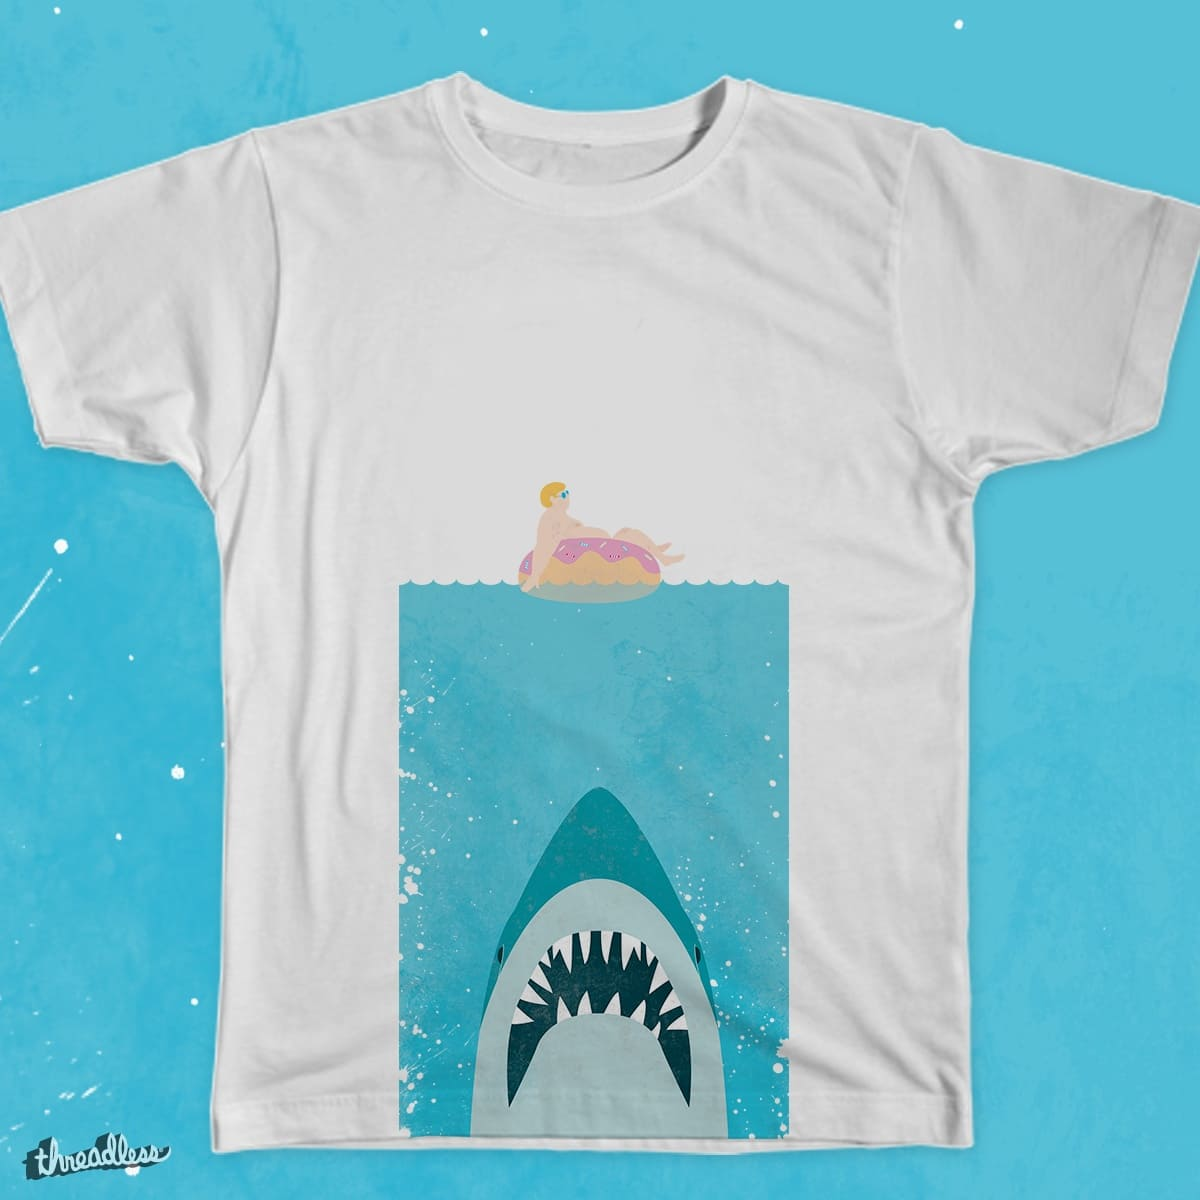 Jaws by Krab-Graphix on Threadless